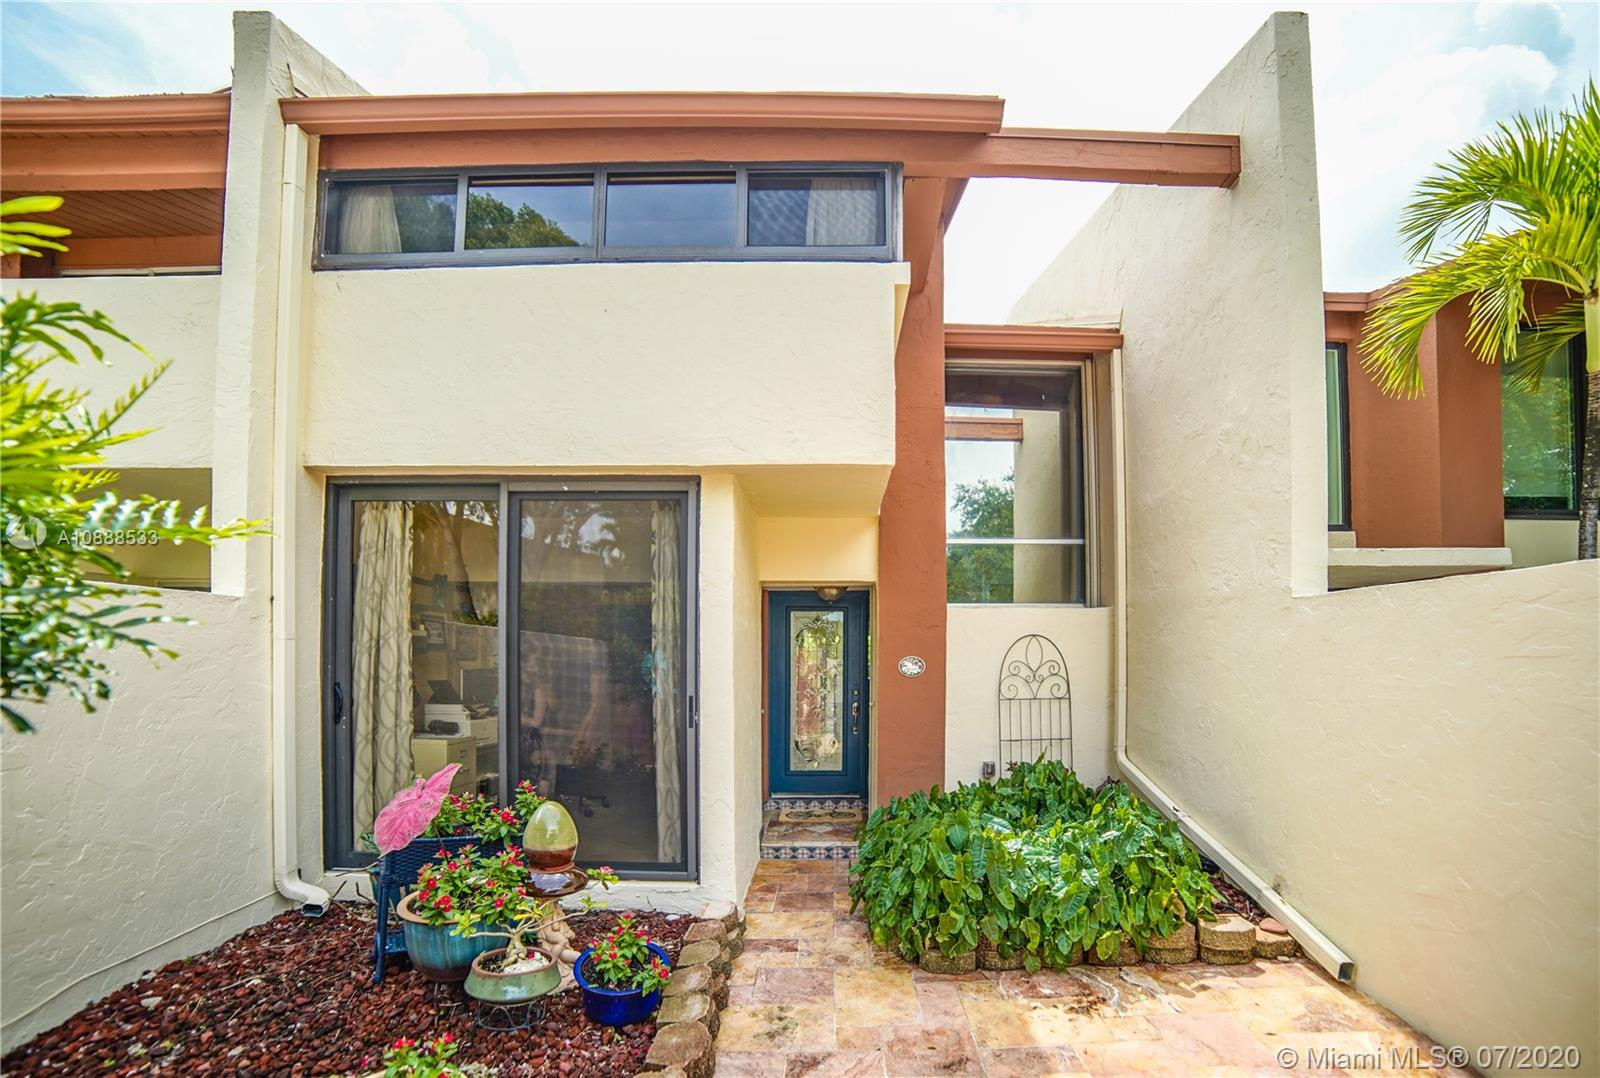 7821 SW 103rd Pl # 0, Miami, Florida 33173, 3 Bedrooms Bedrooms, ,3 BathroomsBathrooms,Residential,For Sale,7821 SW 103rd Pl # 0,A10888533